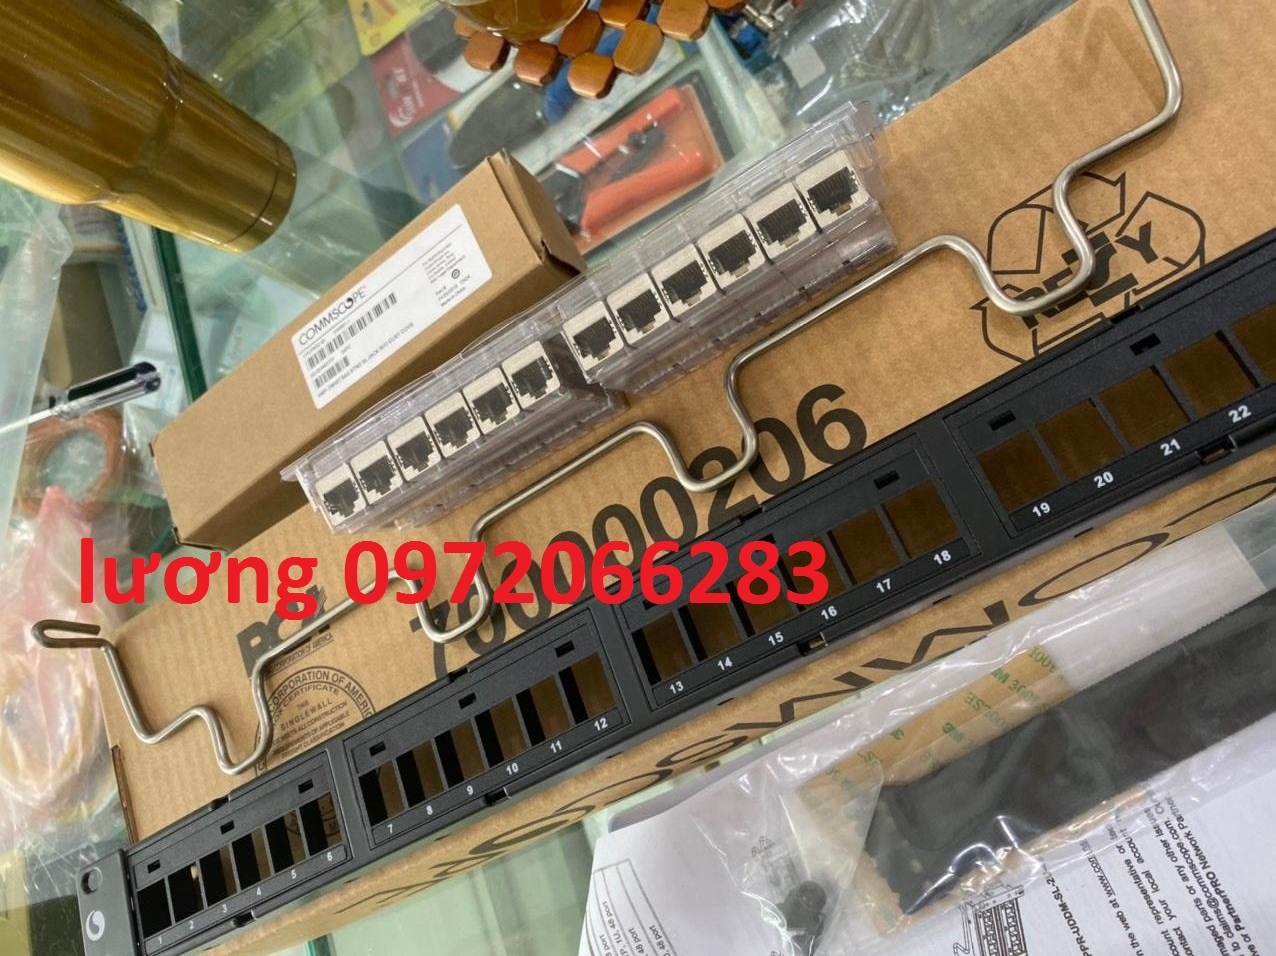 thanh dau noi patch panel 24 cong cat6a.jpg